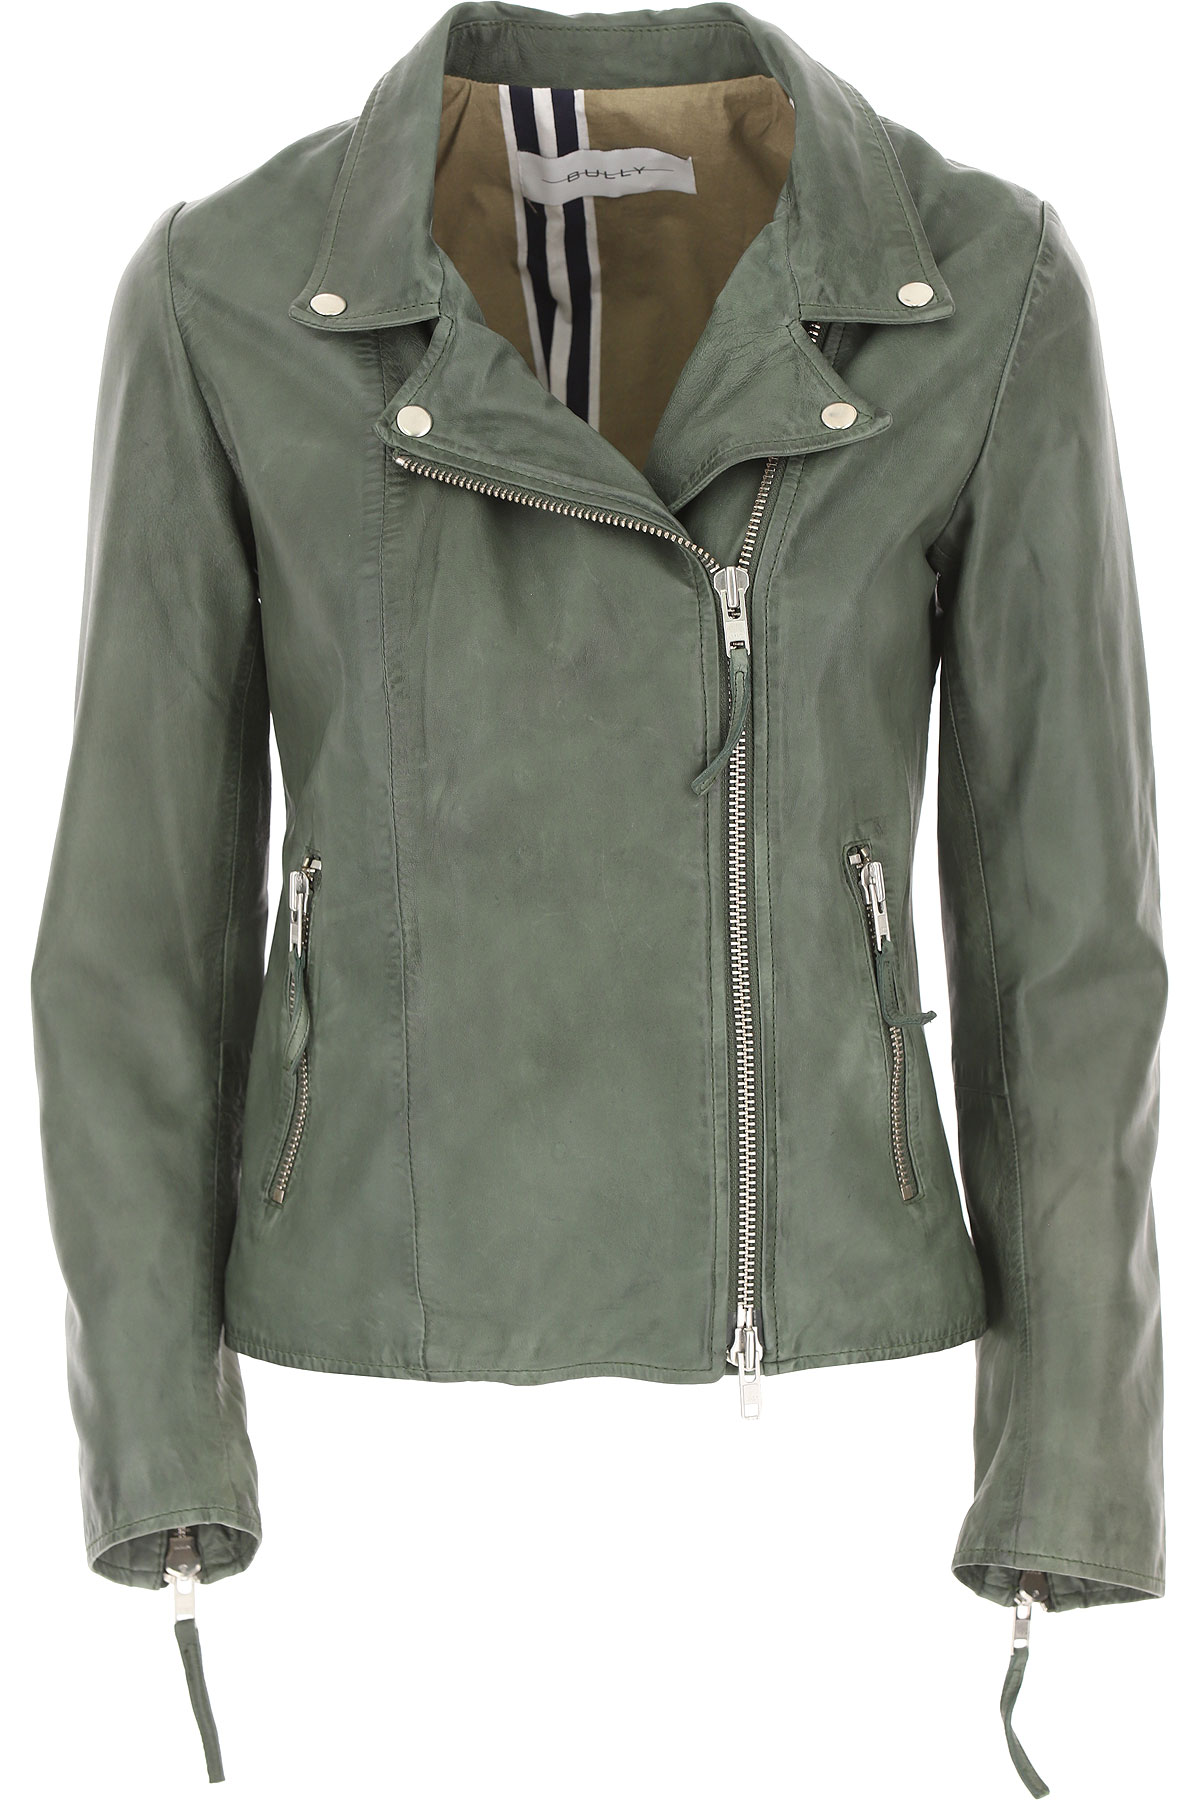 Bully Leather Jacket for Women On Sale, Green, Leather, 2019, 10 6 8